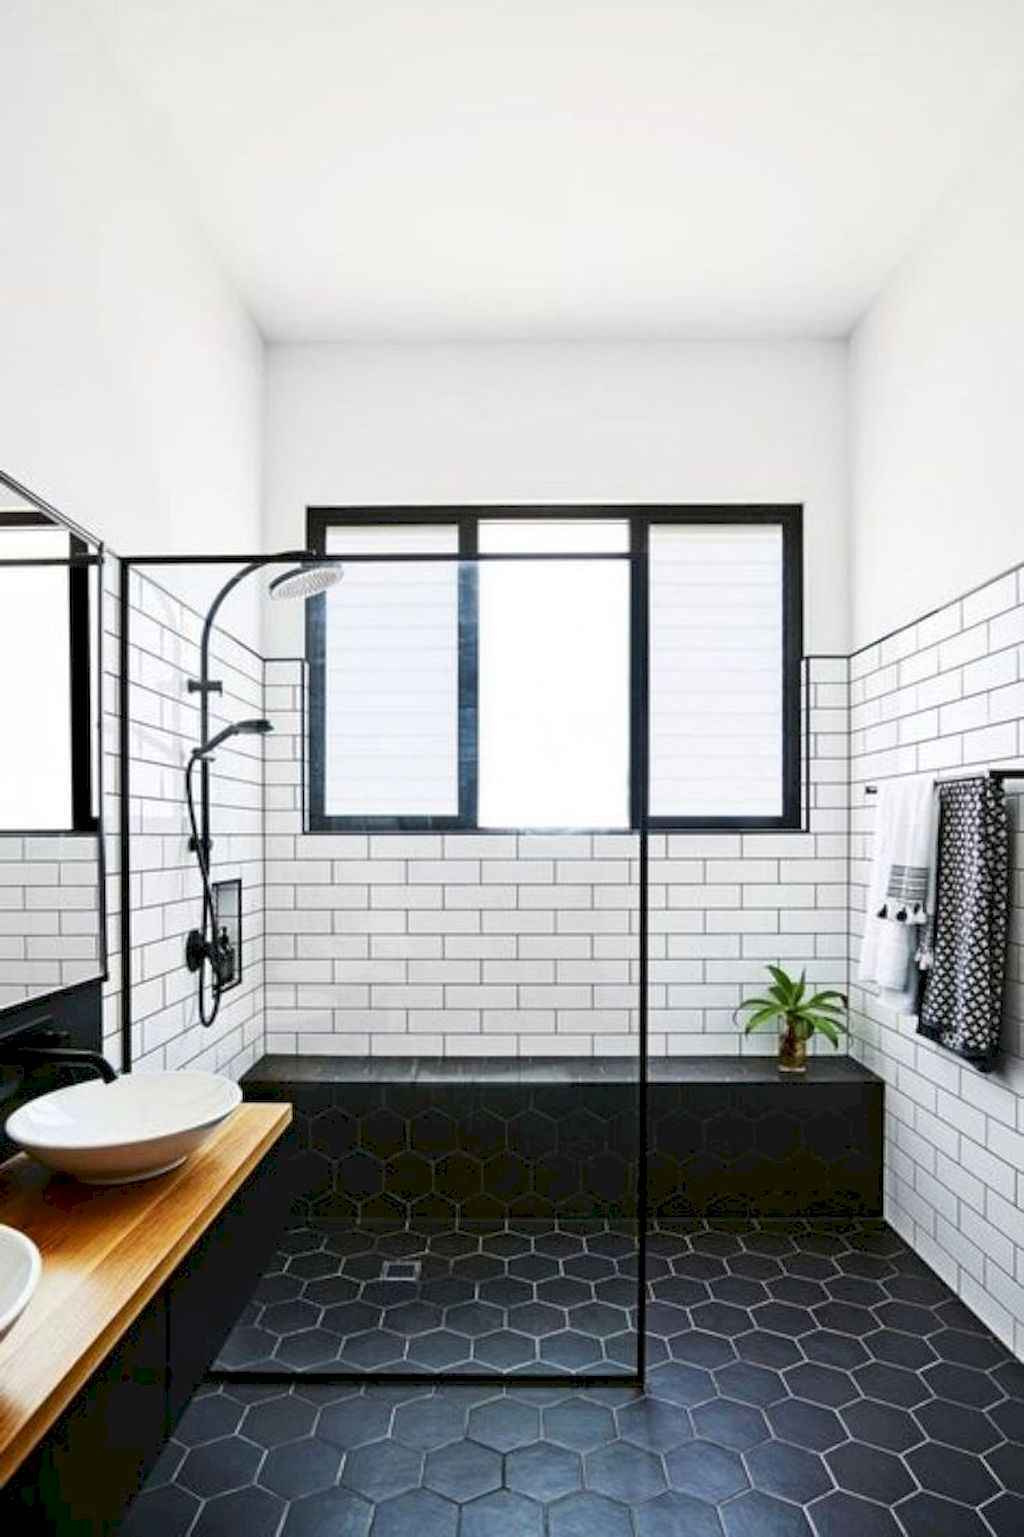 111 awesome small bathroom remodel ideas on a budget (9 ...